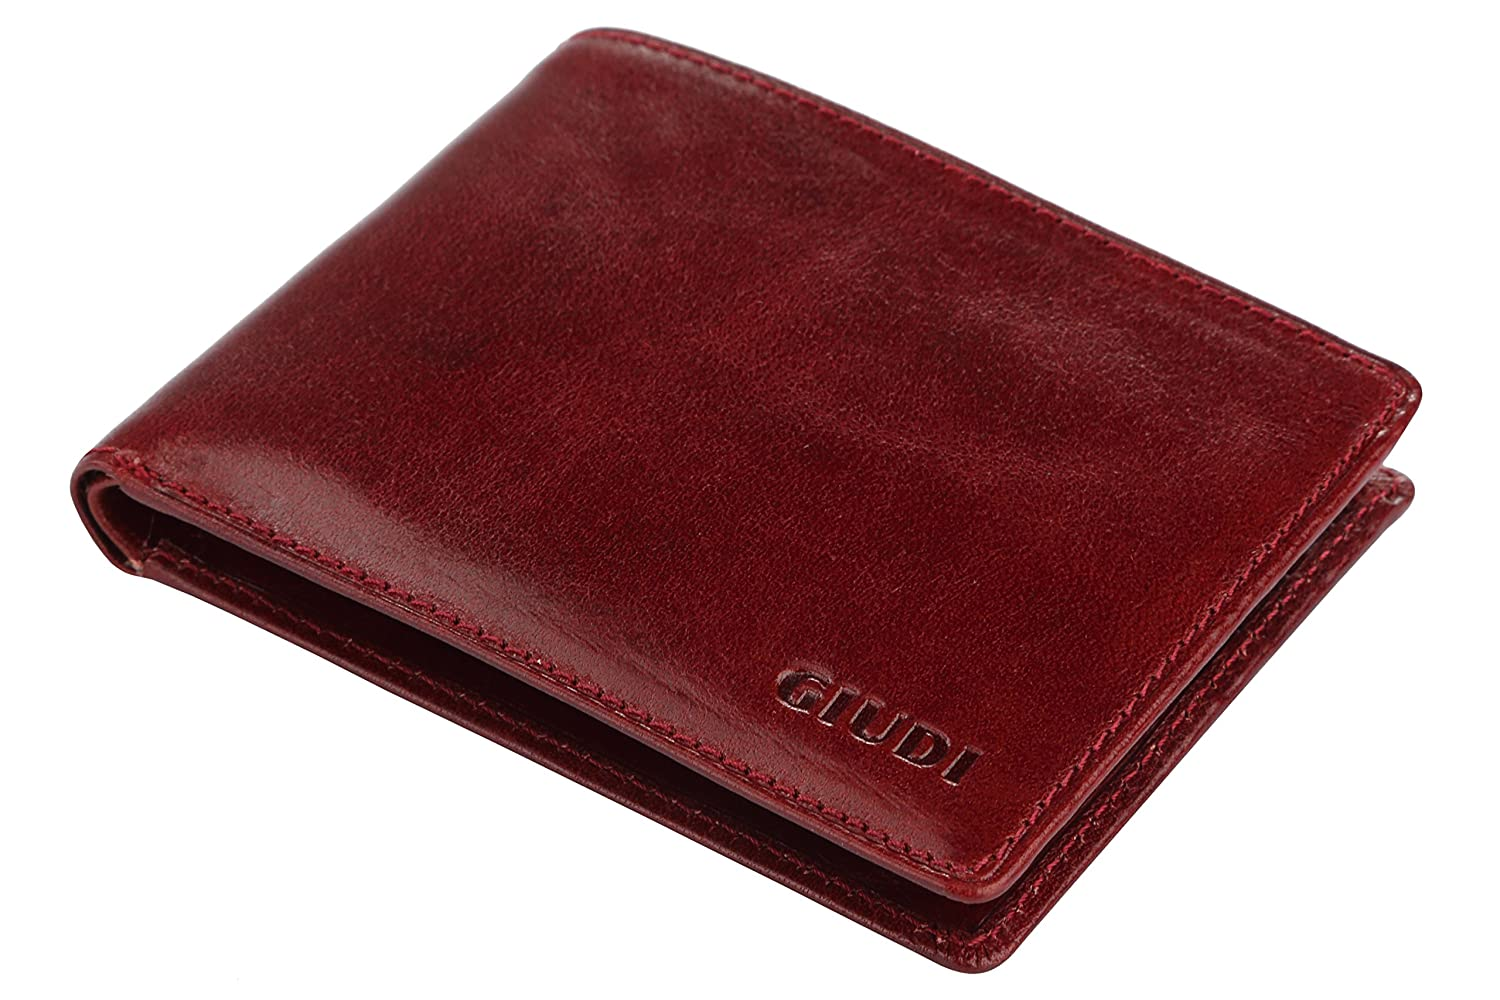 668e2a4f1ab8 Giudi Luxury Genuine Leather Bifold Men s Wallet 8 Card Holder Made in  Italy Expensive Slim and Comfortable